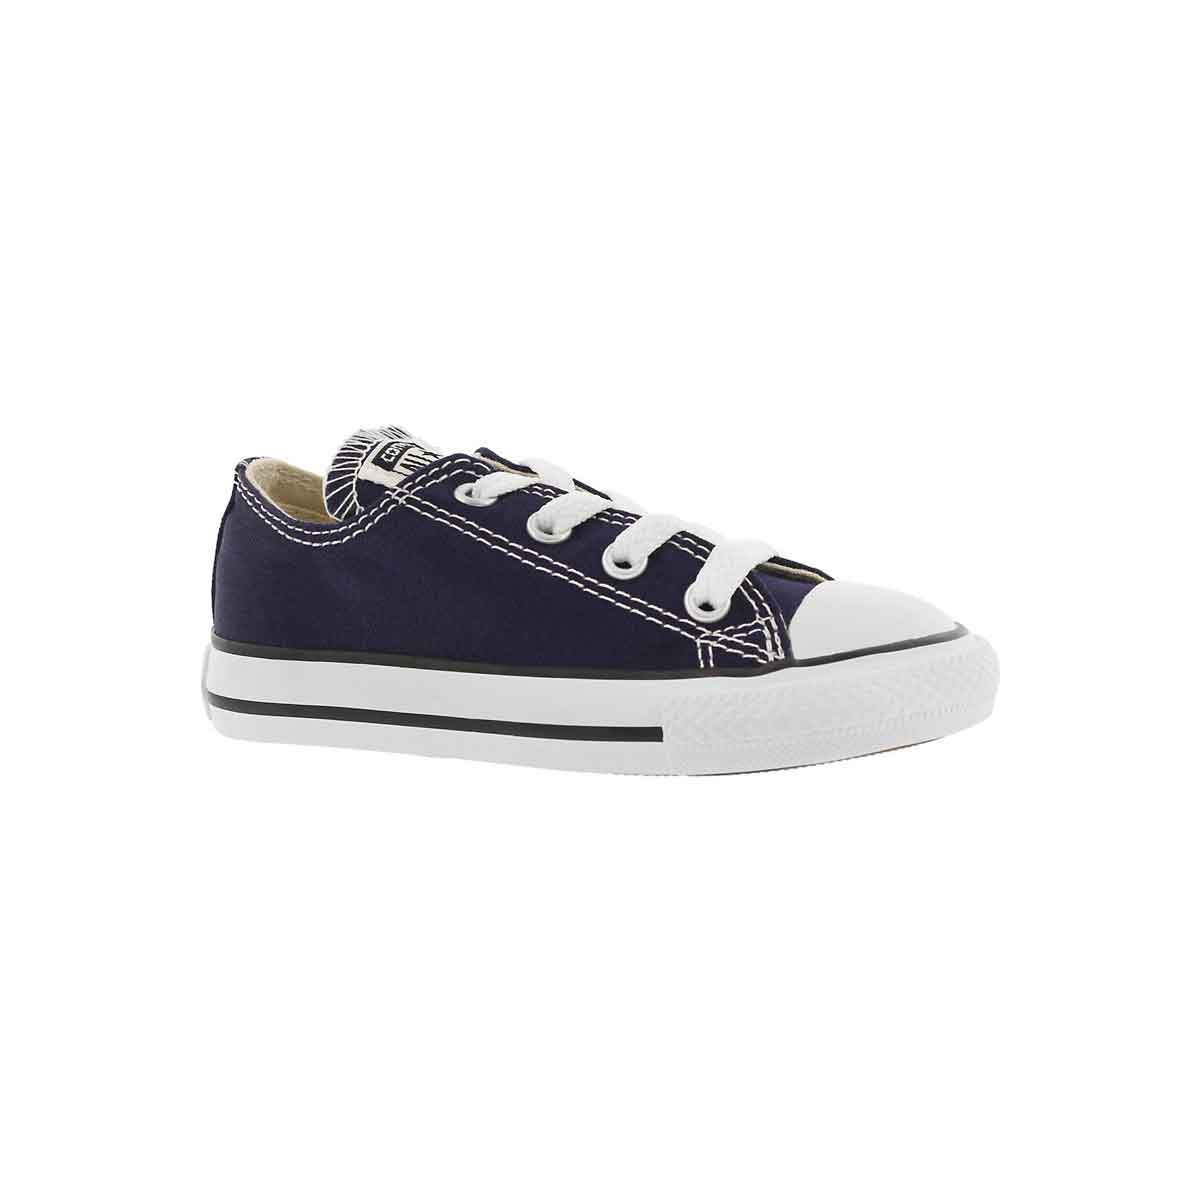 Infants' CHUCK TAYLOR ALL STAR midnight sneakers